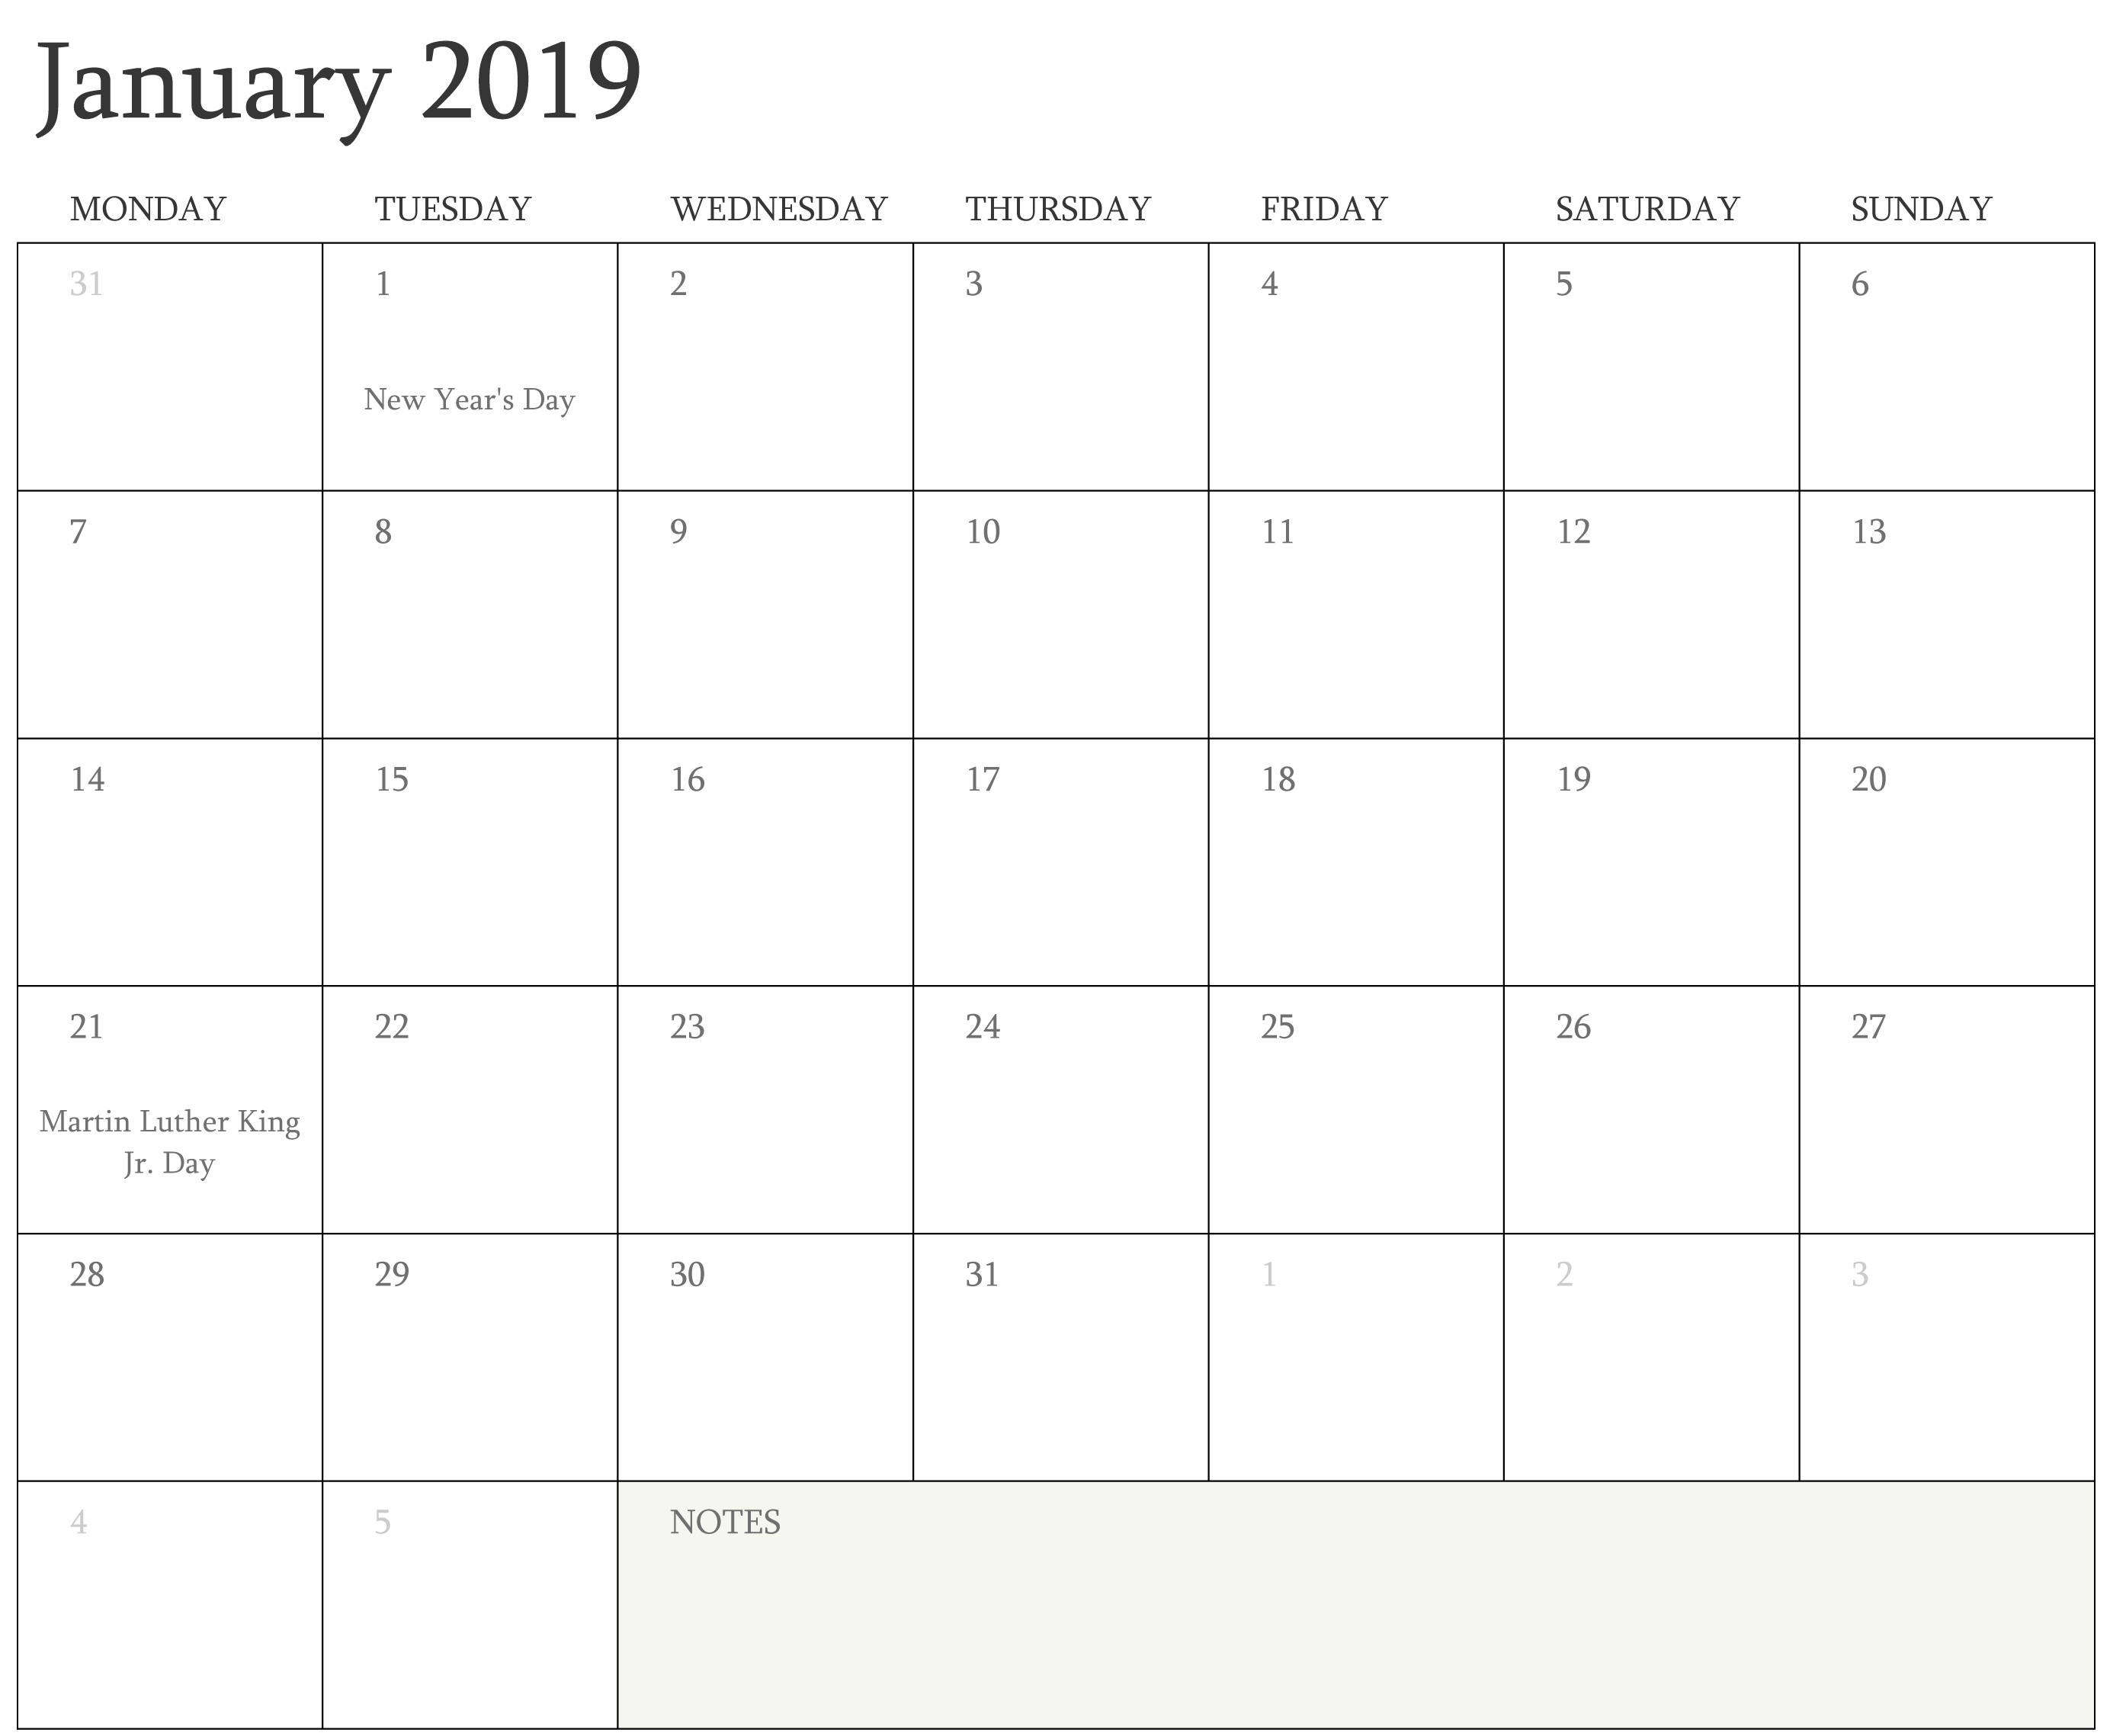 Print Calendar January 2019 Template - Free Printable 2018 Calendar Calendar 2019 Fillable